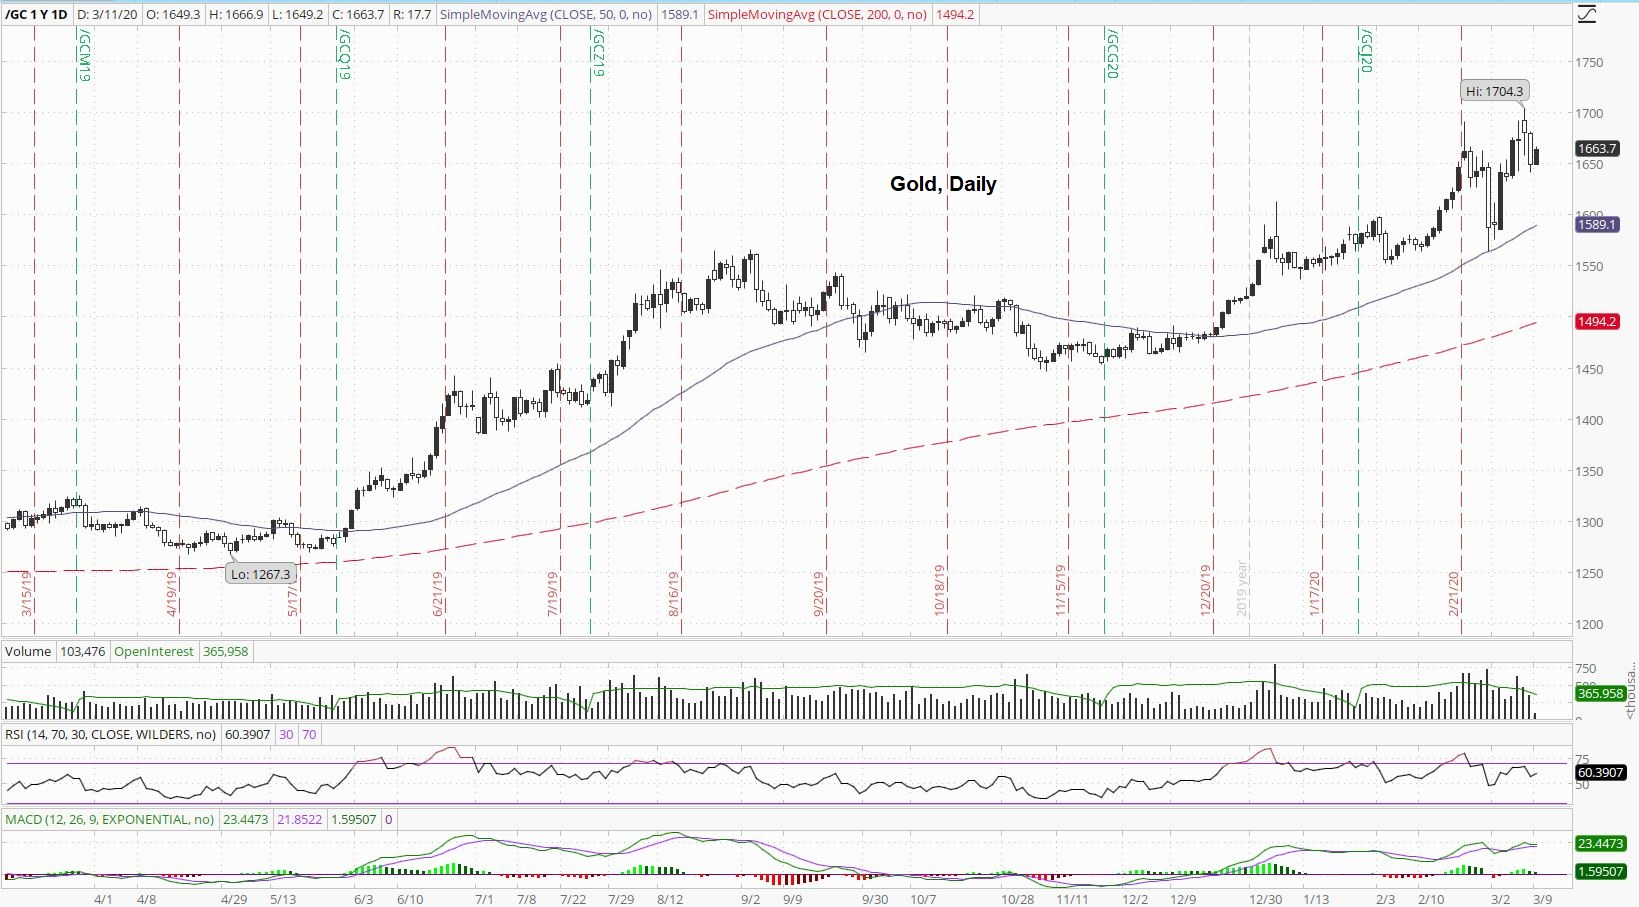 Gold Price Daily Index